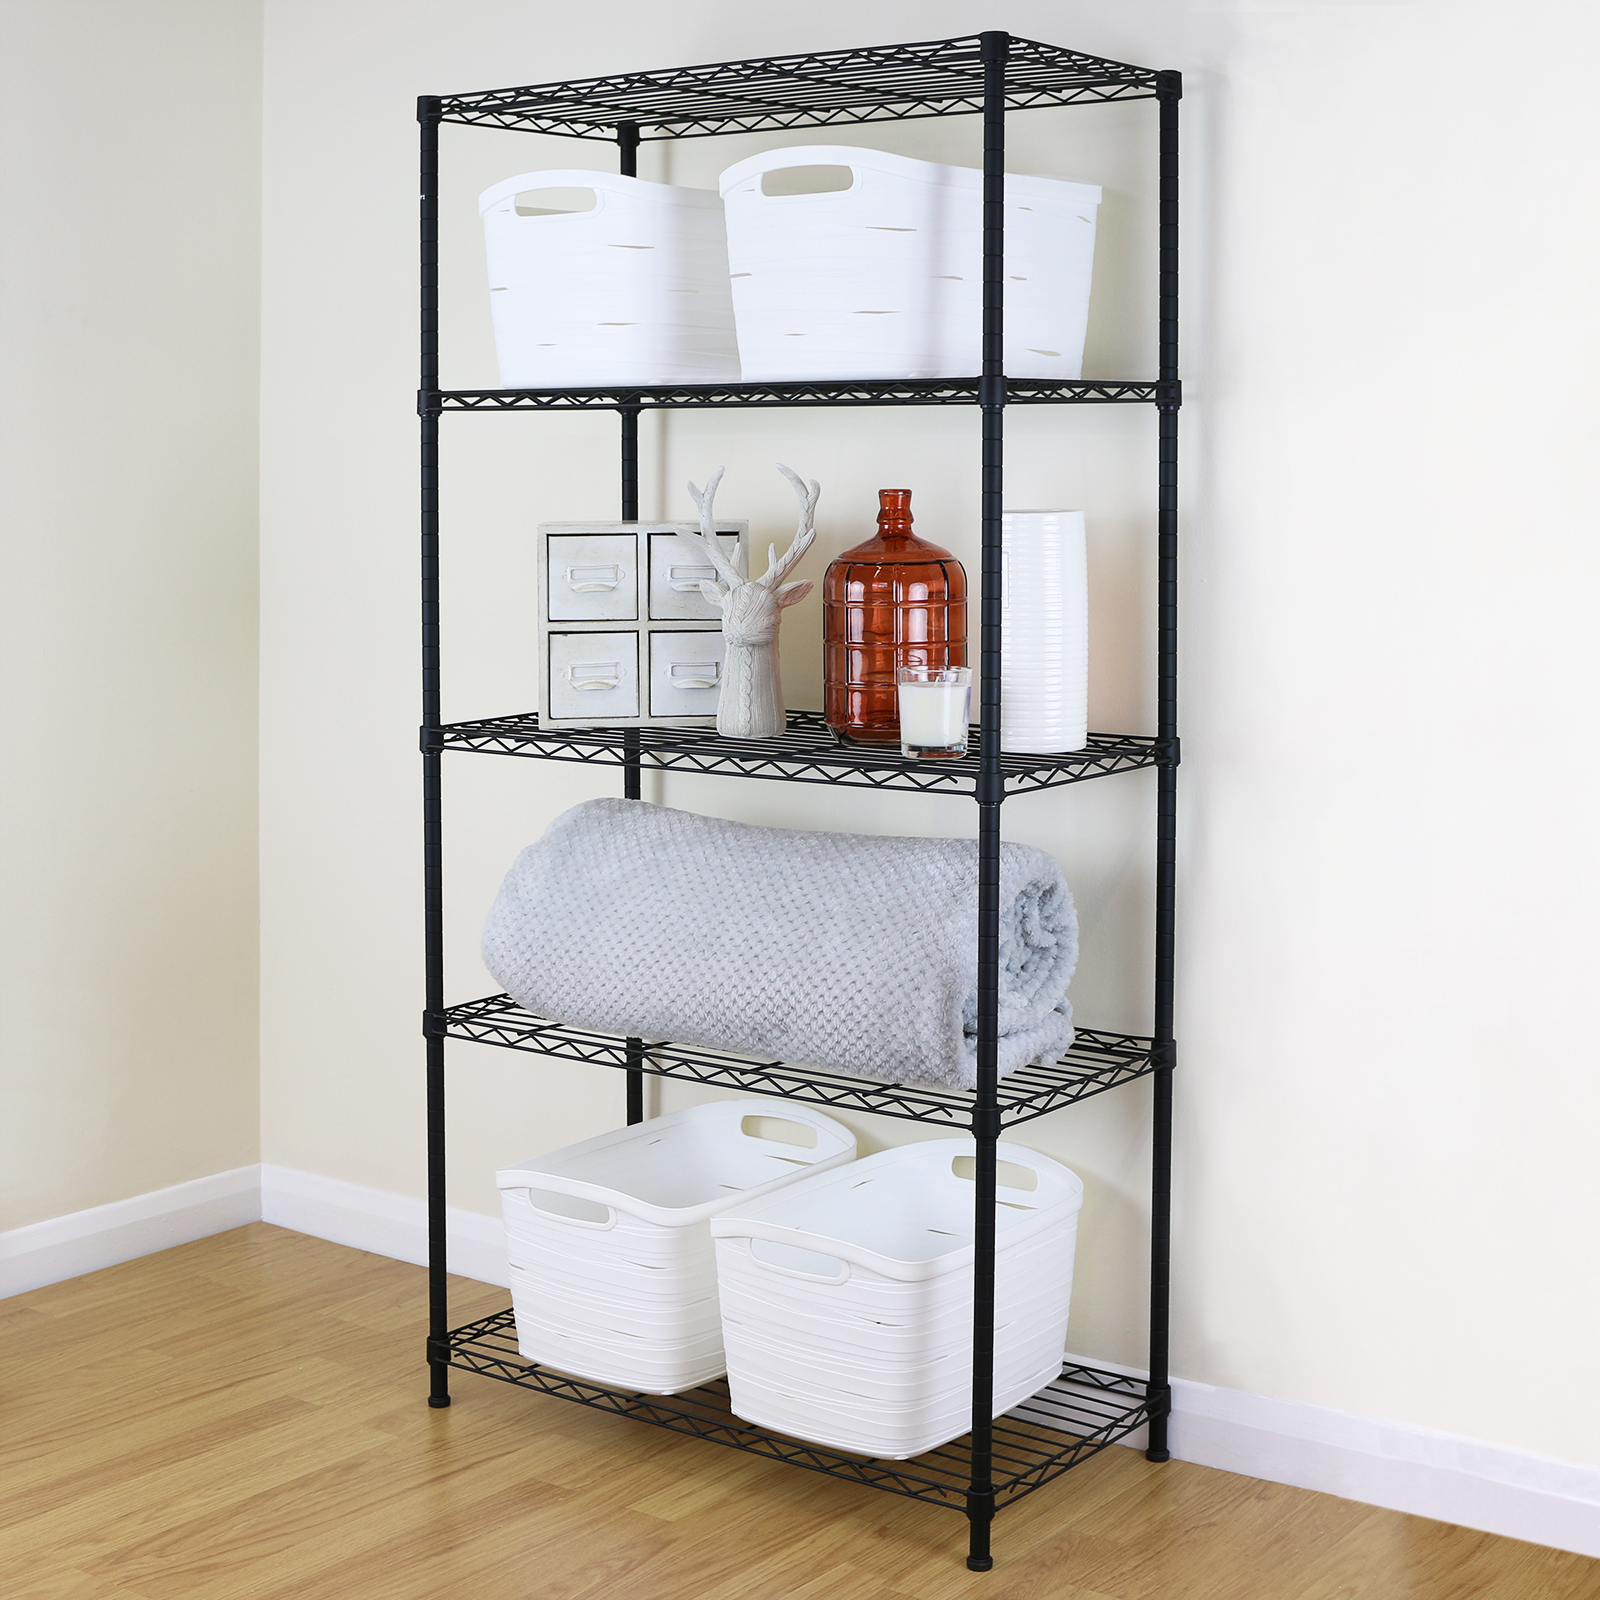 storage racks kitchen 5 tier black metal storage rack shelving wire shelf 2568